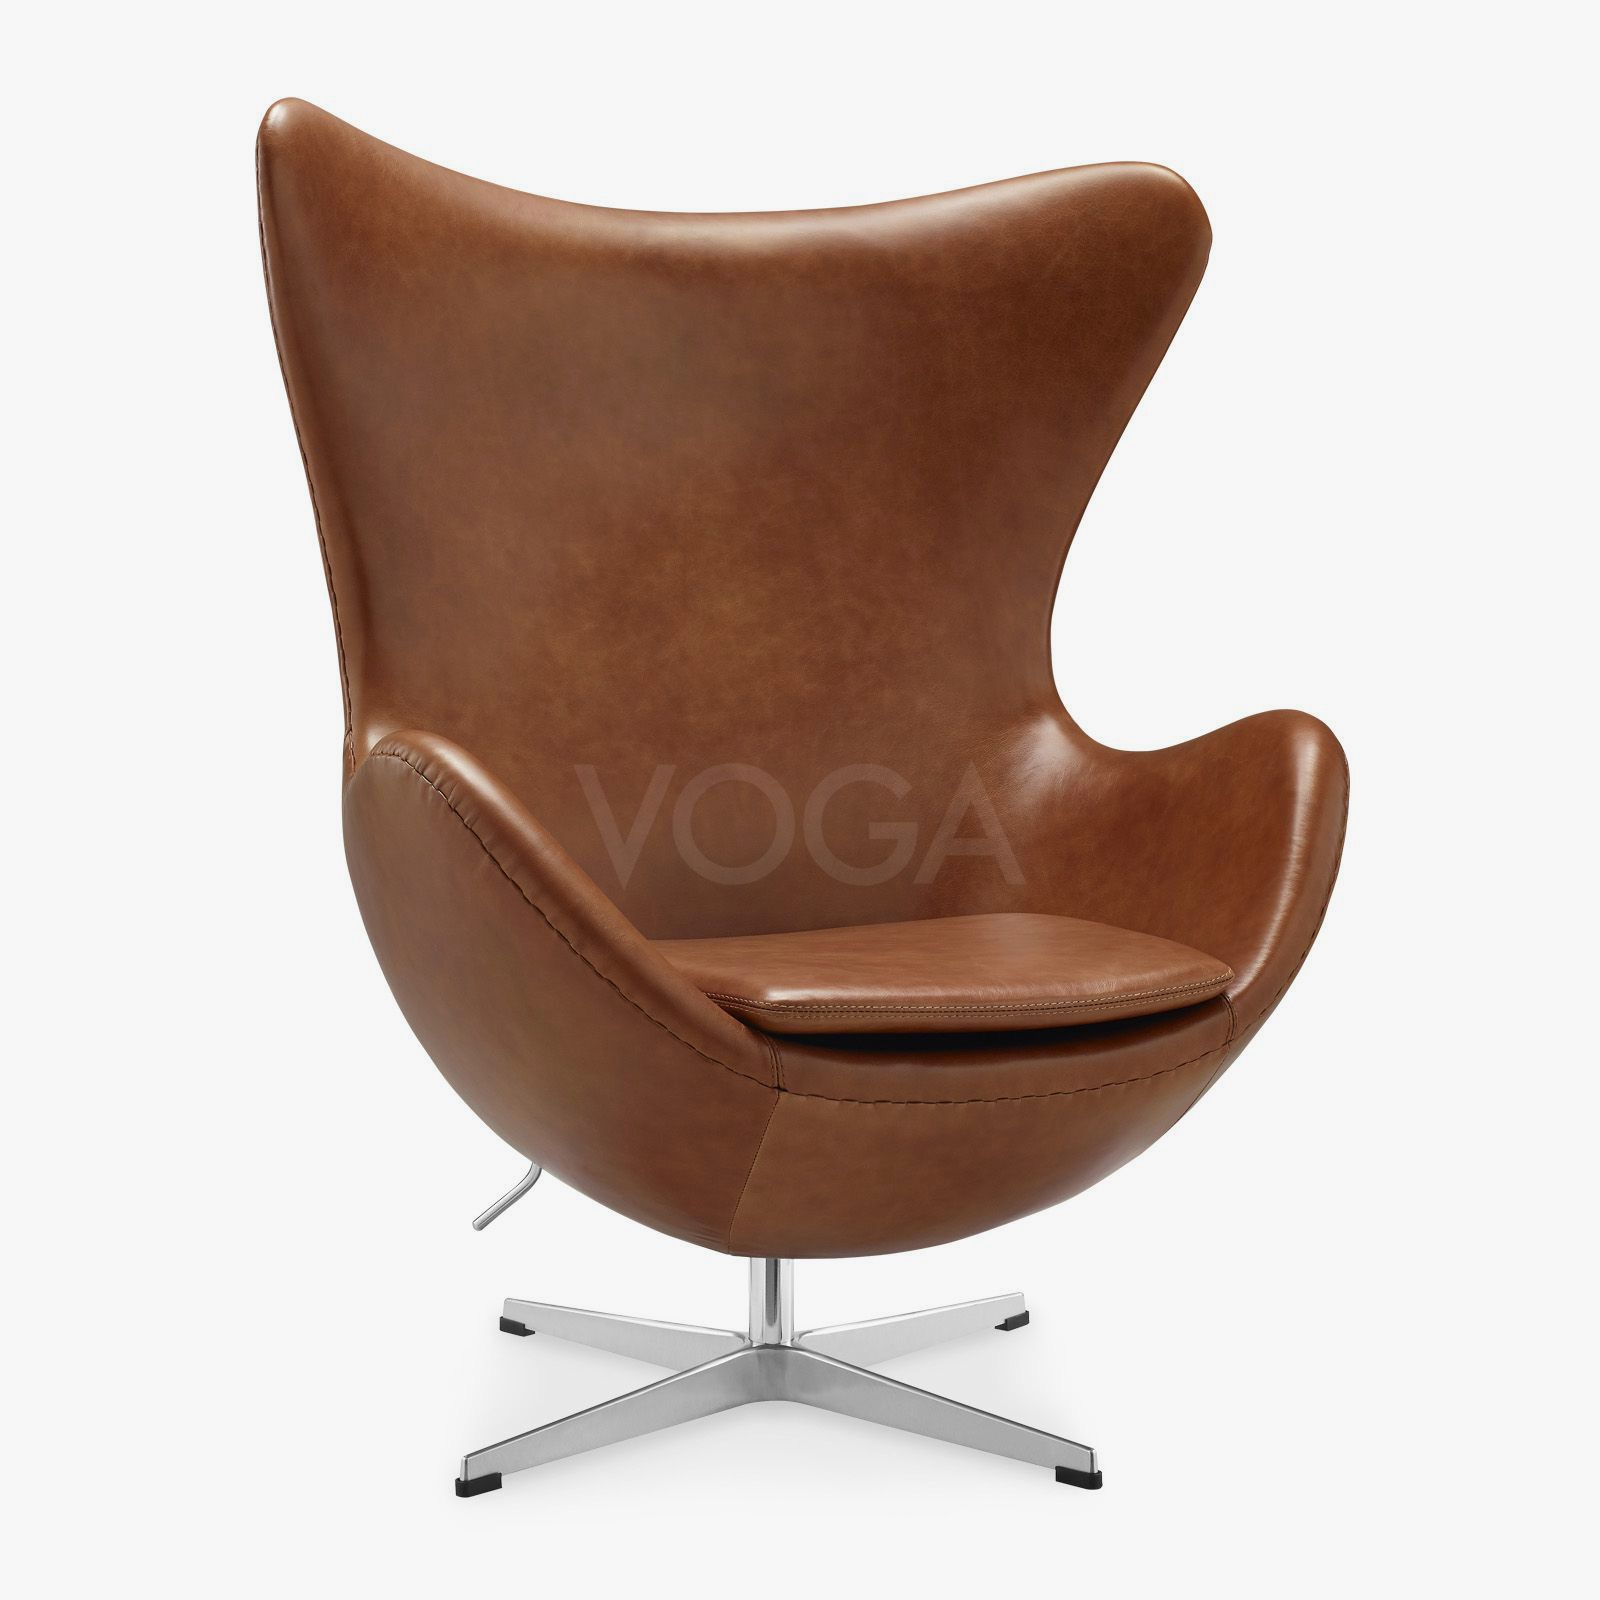 Egg Lounge Sessel Egg Chair Sessel Pinterest Egg Chair And Arne Jacobsen